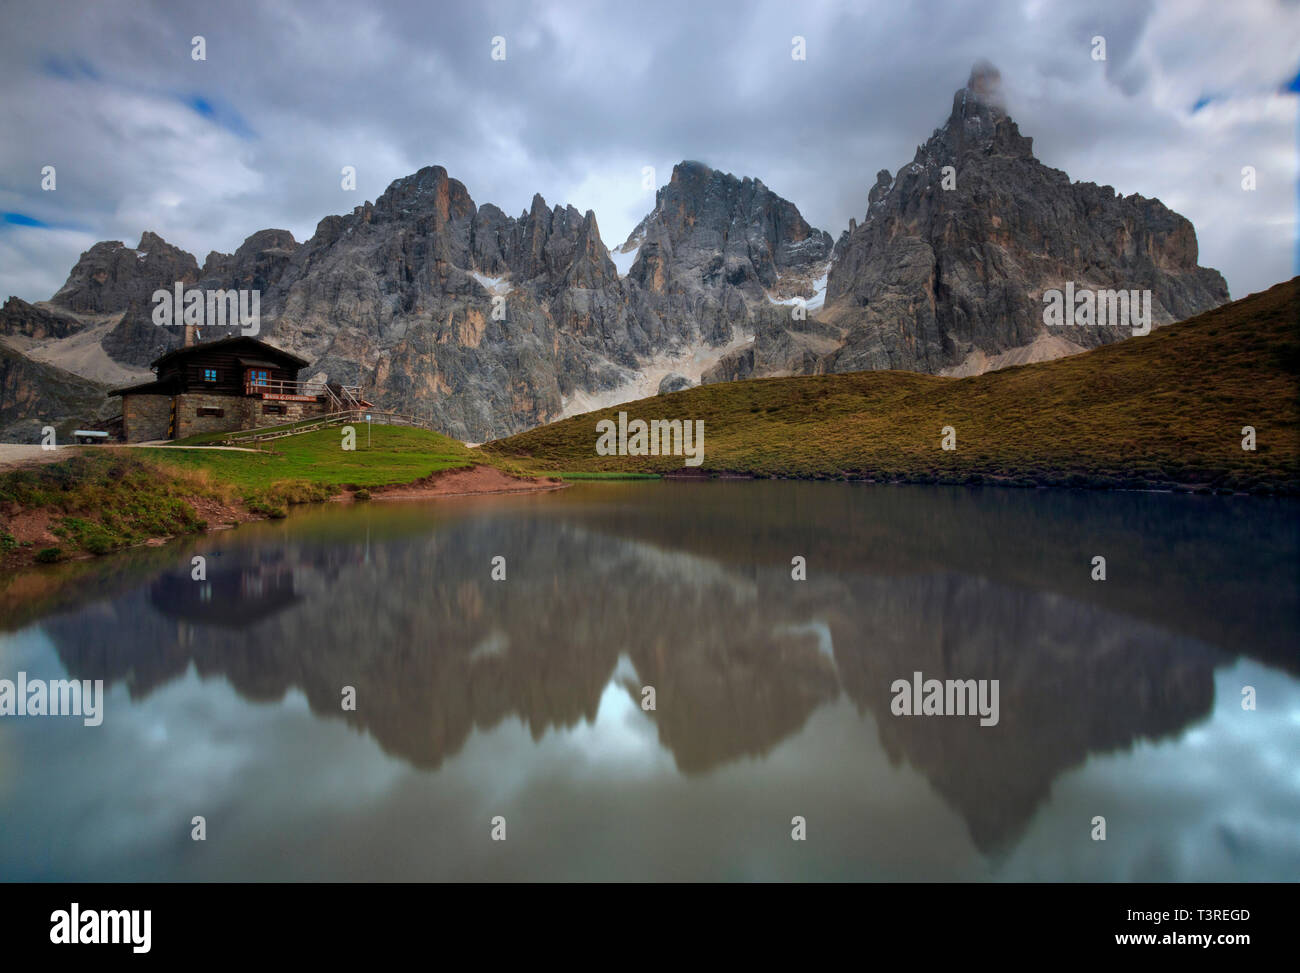 The whole range of the Pale di San Martino, one of the most famous and beautiful groups of the Dolomites, reflected in the waters of a small lake near - Stock Image